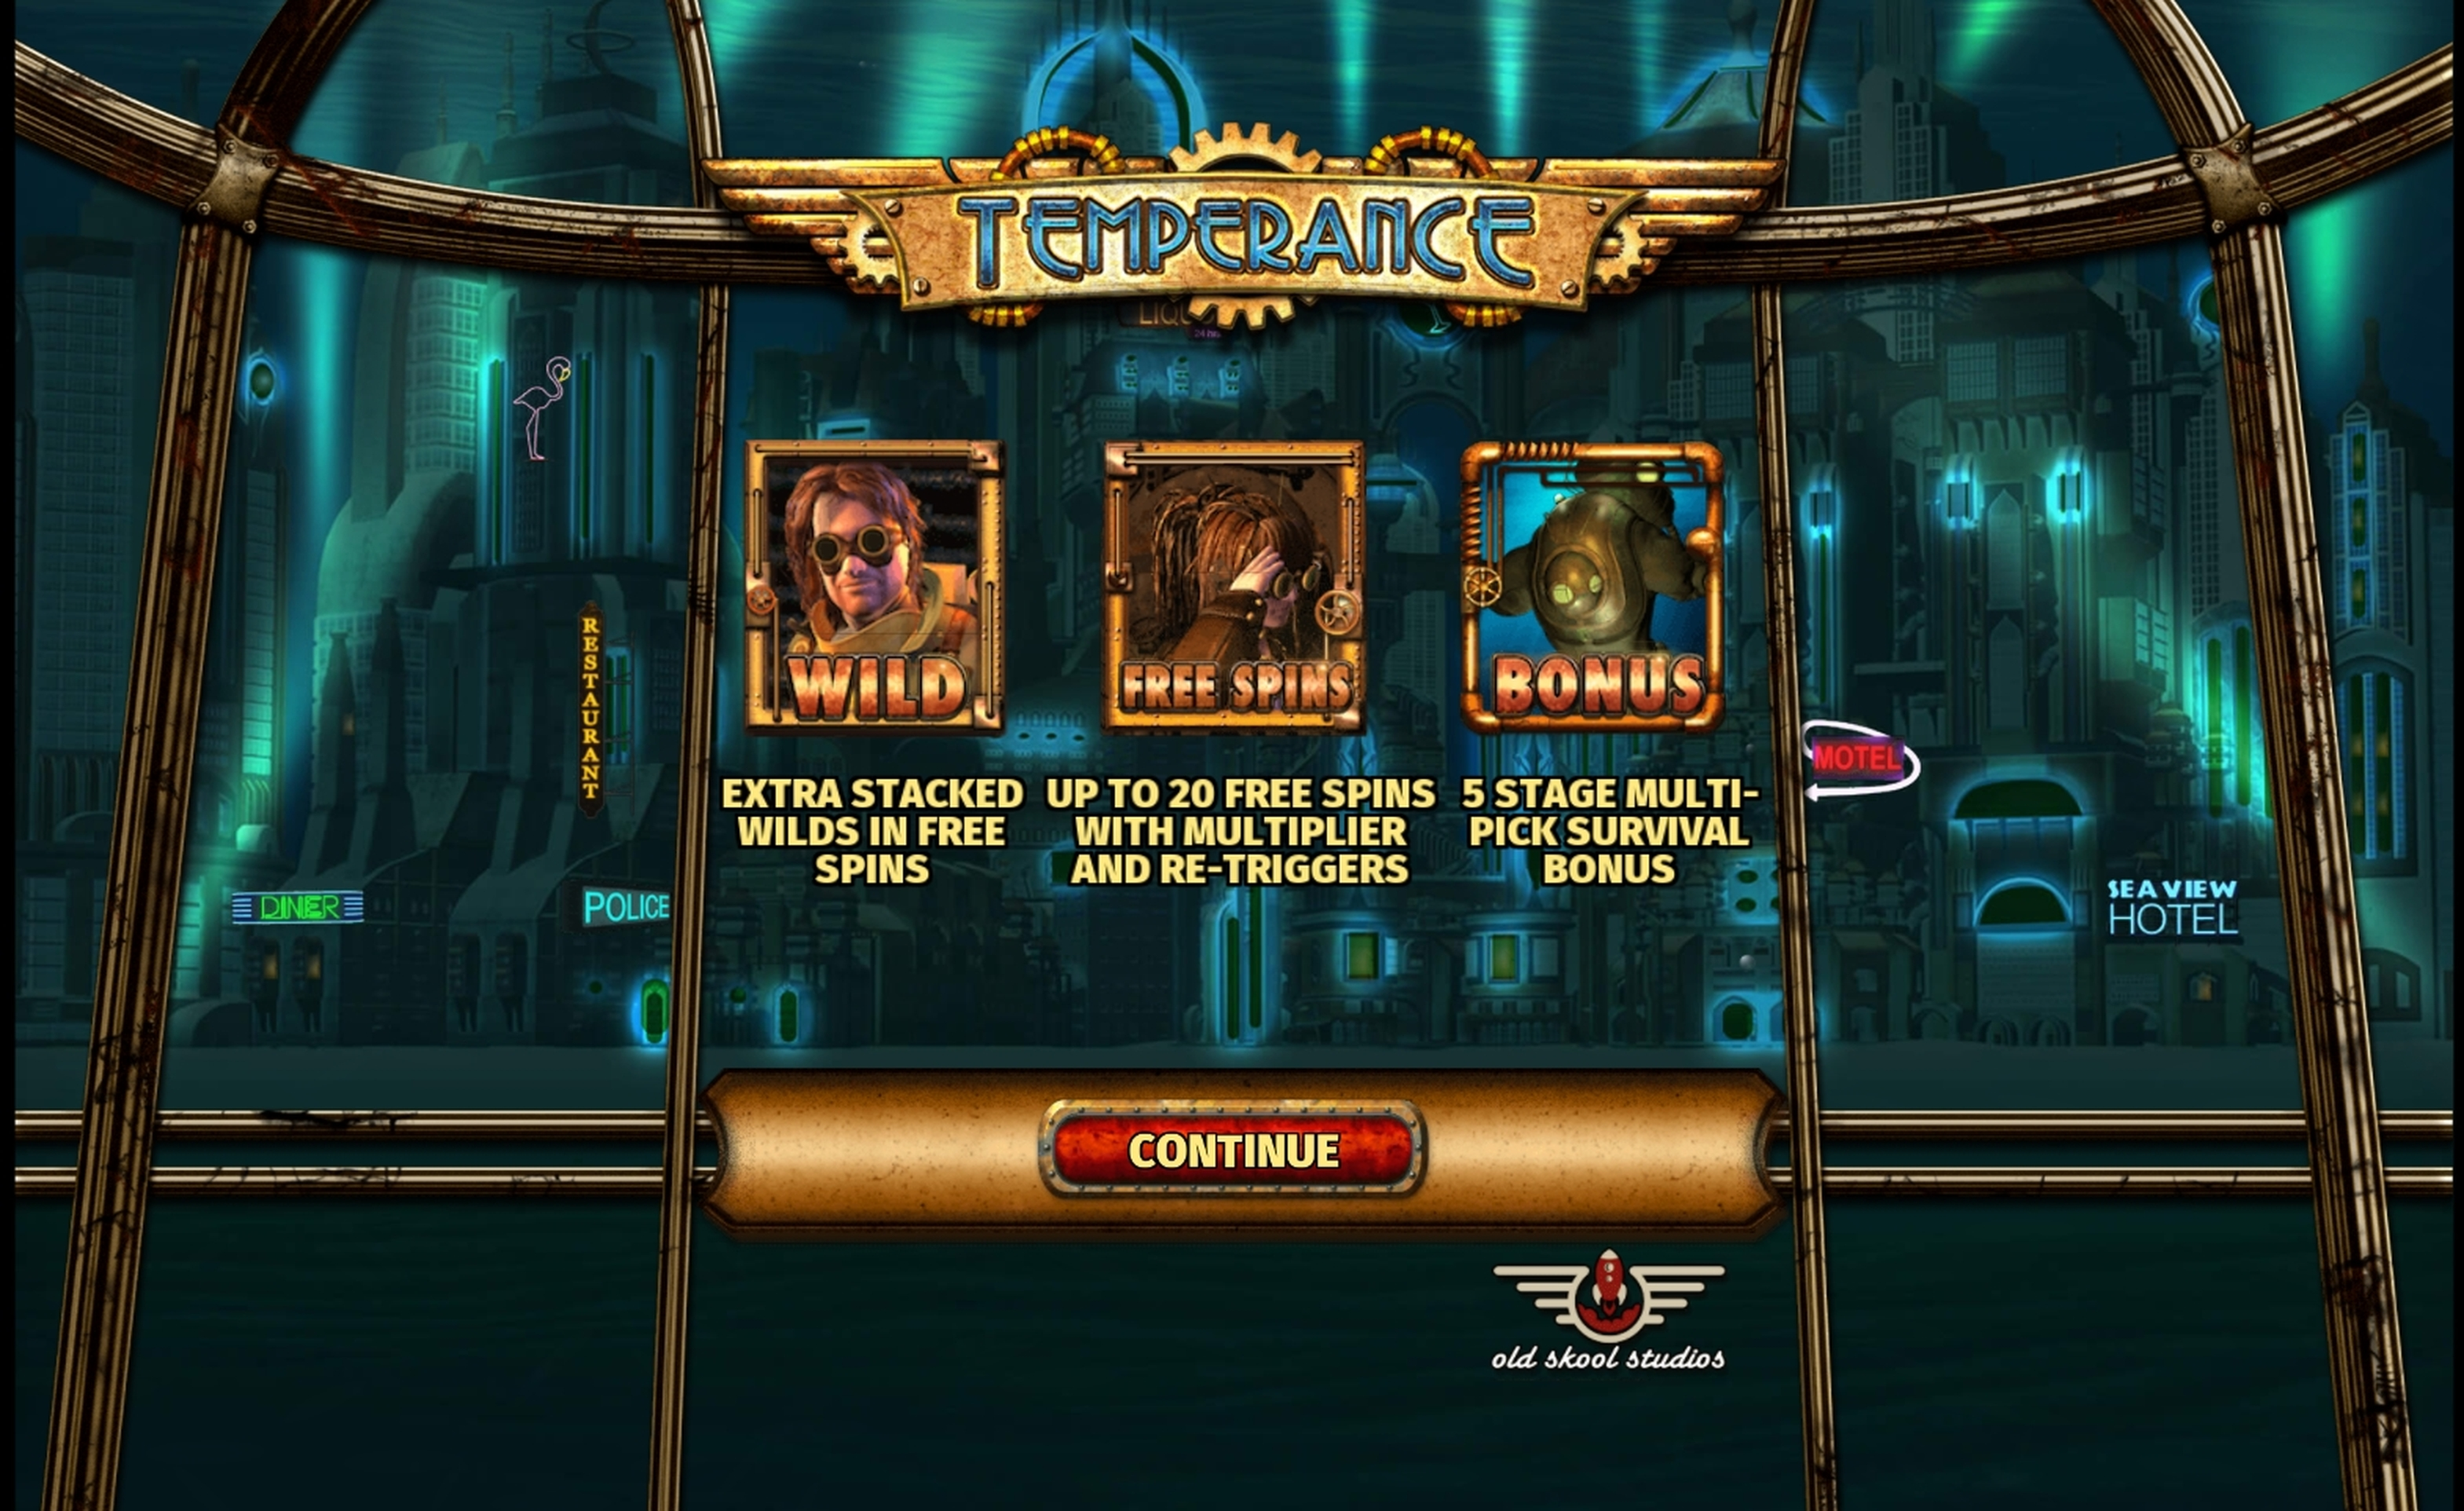 Play Temperance Free Casino Slot Game by Old Skool Studios